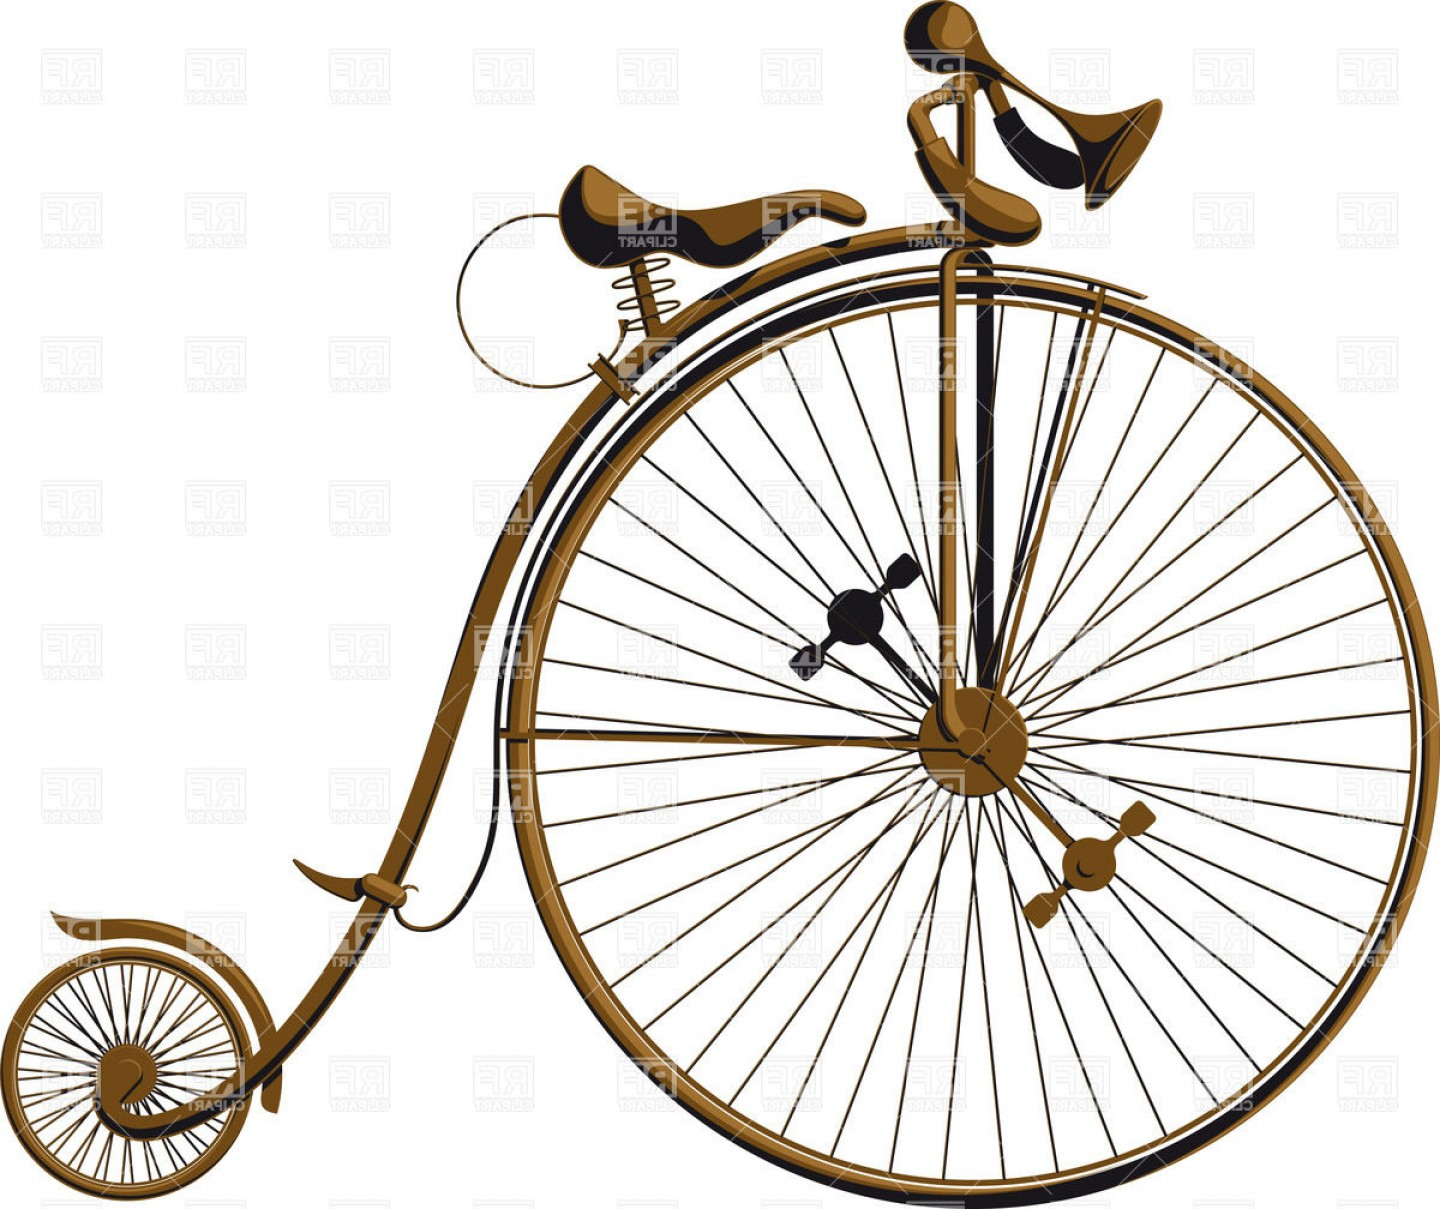 1440x1209 Grungy Old Fashioned Bicycle With A Large Front Wheel Penny